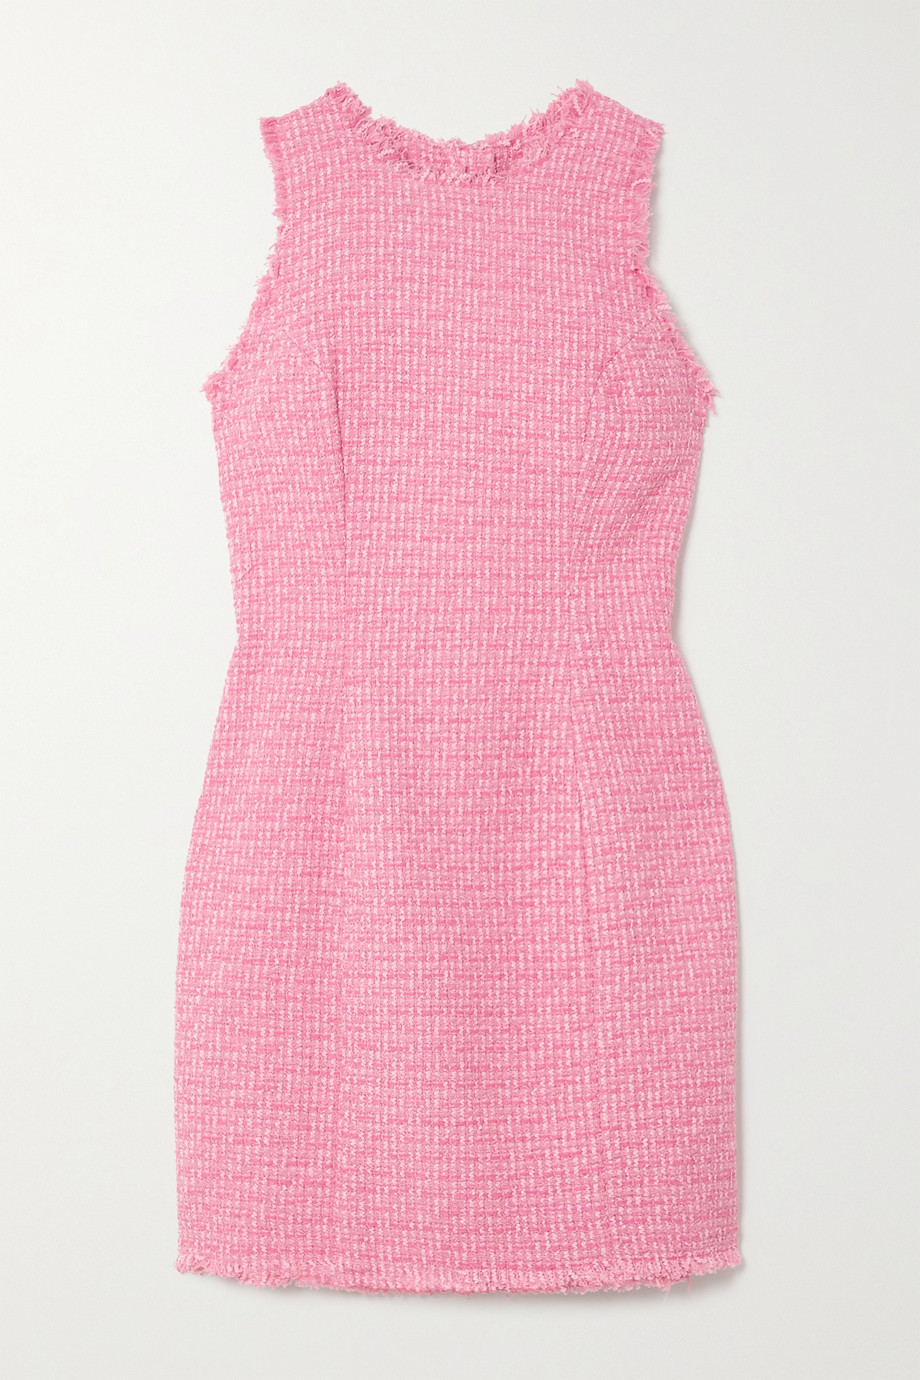 Balmain Frayed cotton-blend tweed mini dress